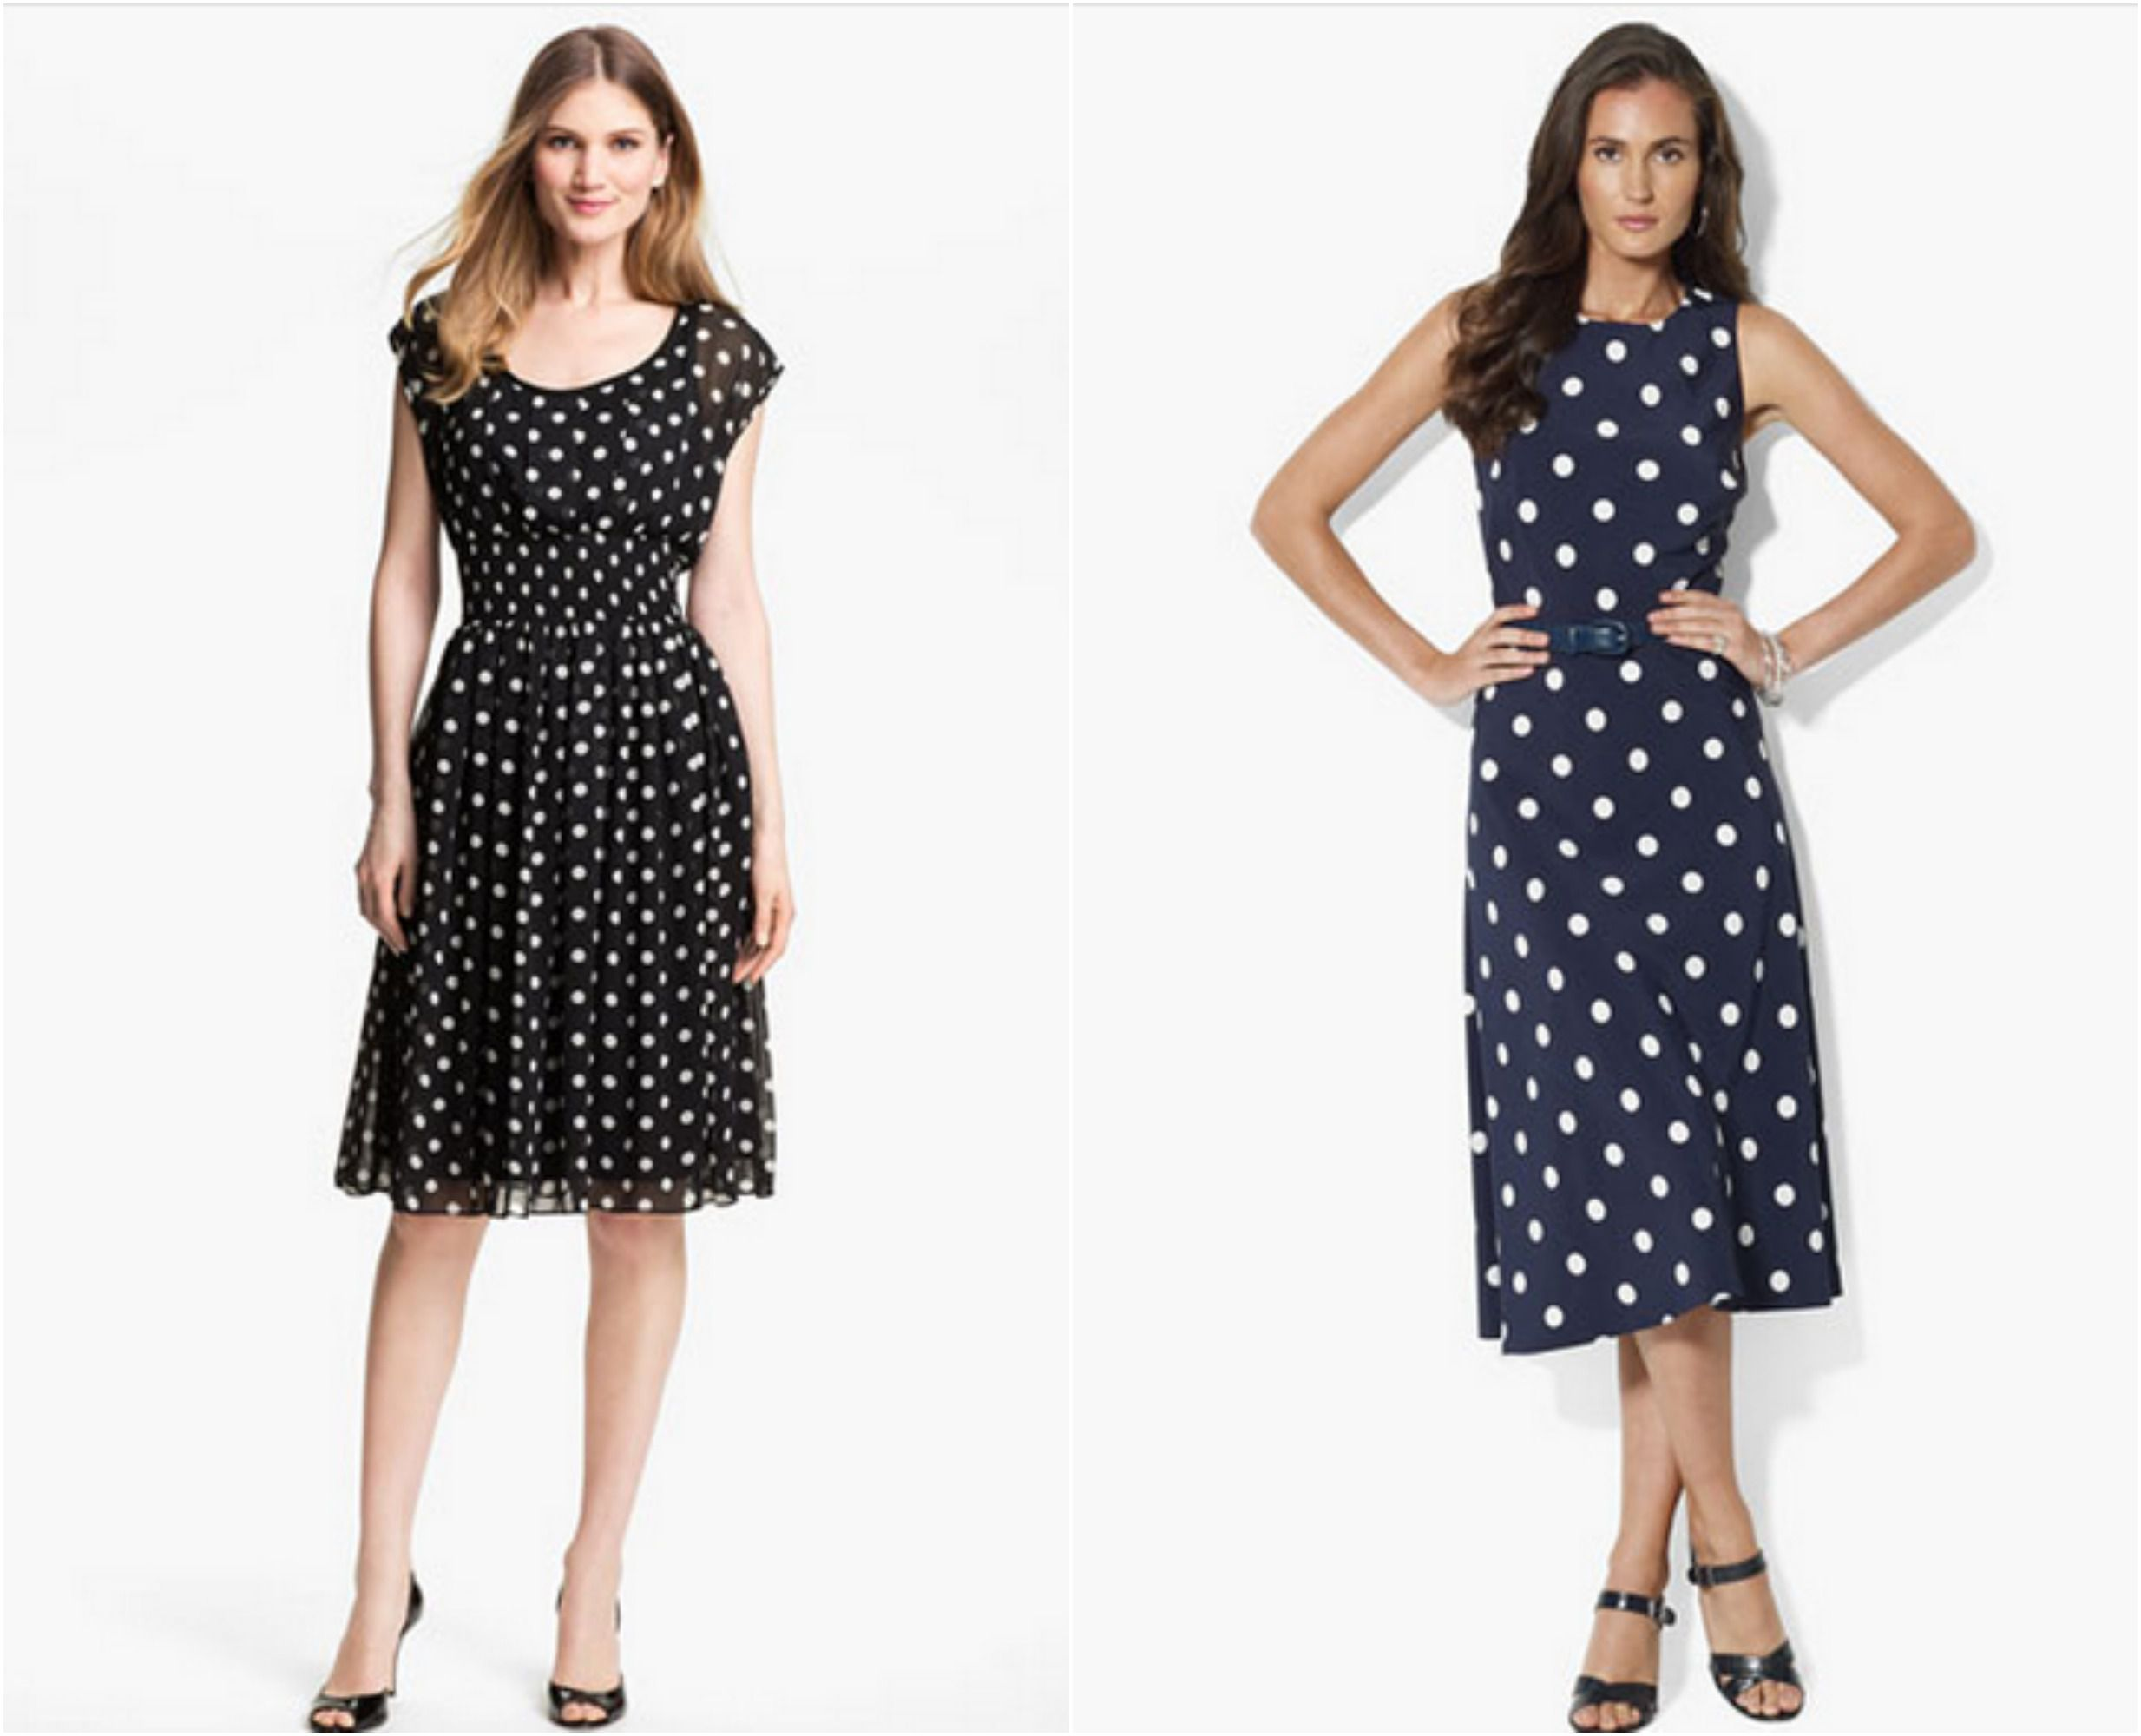 Polka Dot Bridesmaid Dresses - Rustic Wedding Chic